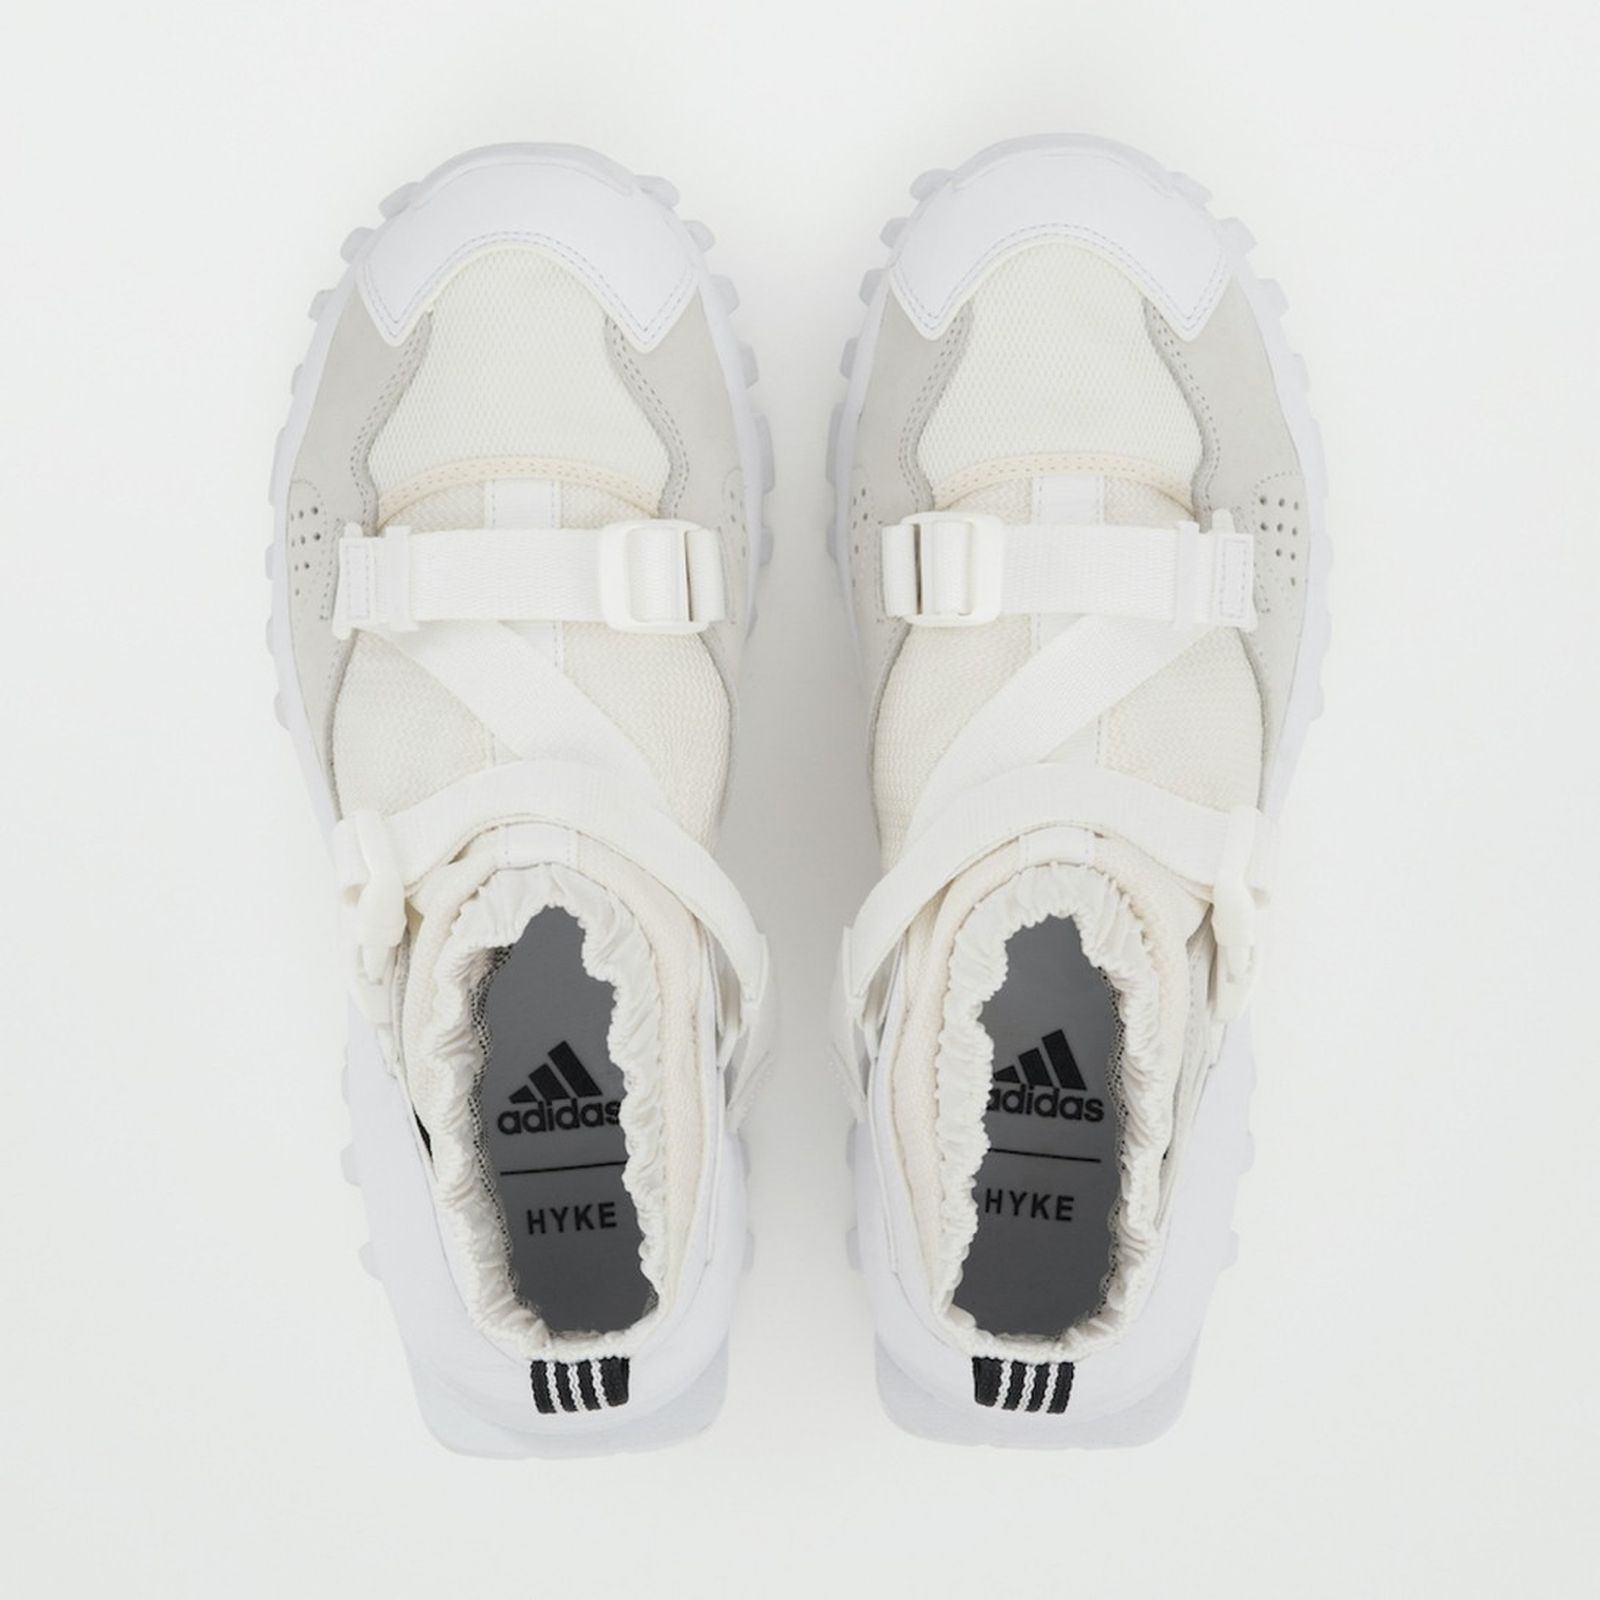 hyke-adidas-collab-fw20-sneakers-5